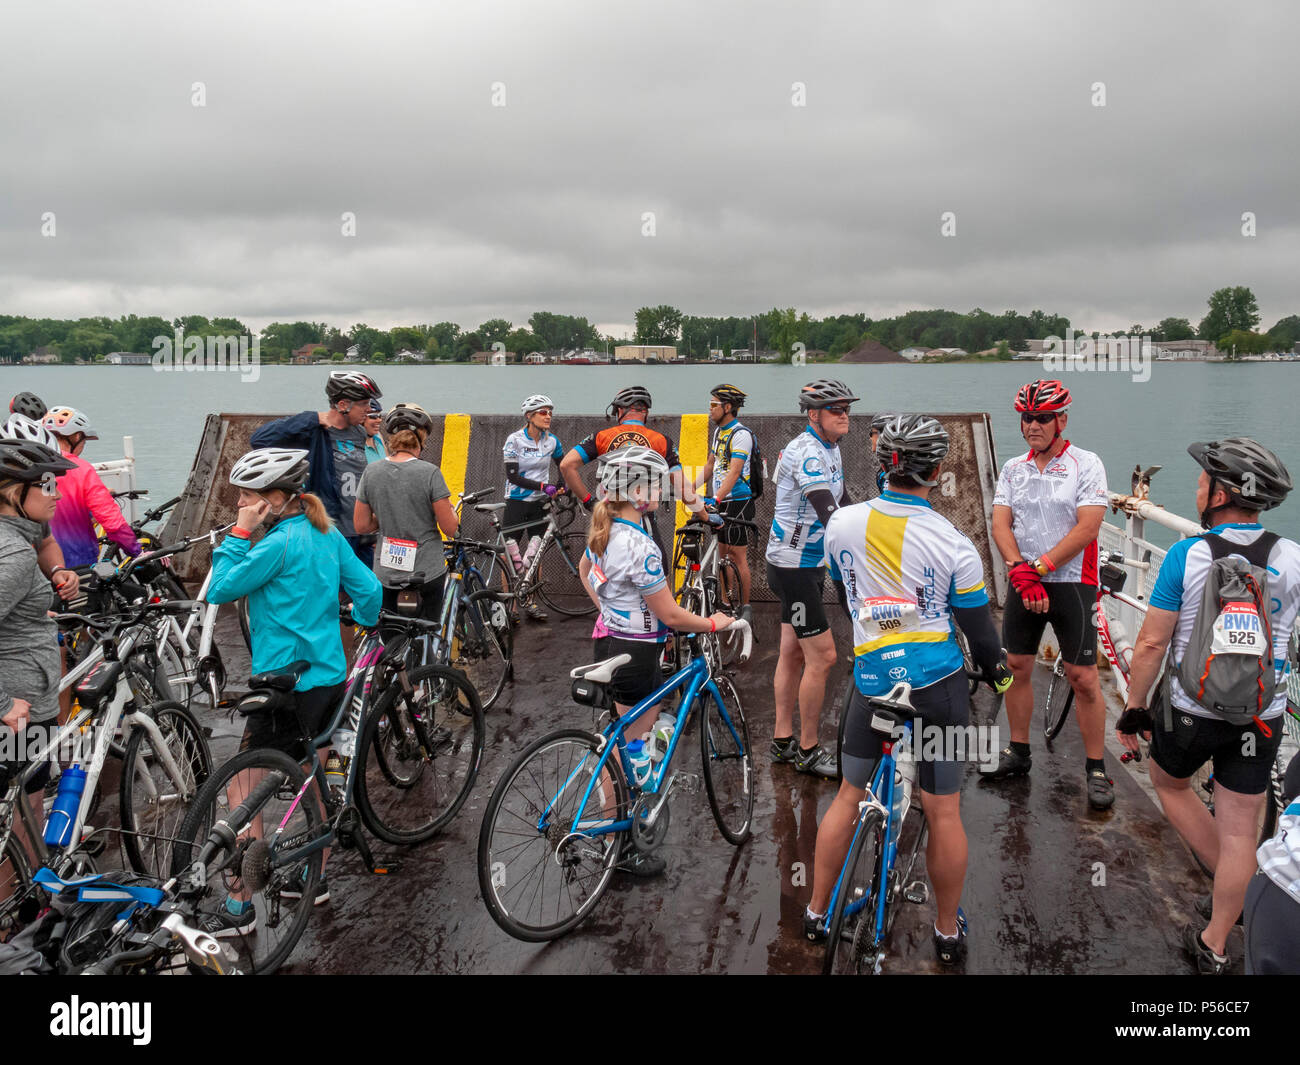 Harsens Island, Michigan - On a rainy Sunday, bicycle riders take the ferry to Harsens Island to participate in the annual Blue Water Ramble. Riders c - Stock Image